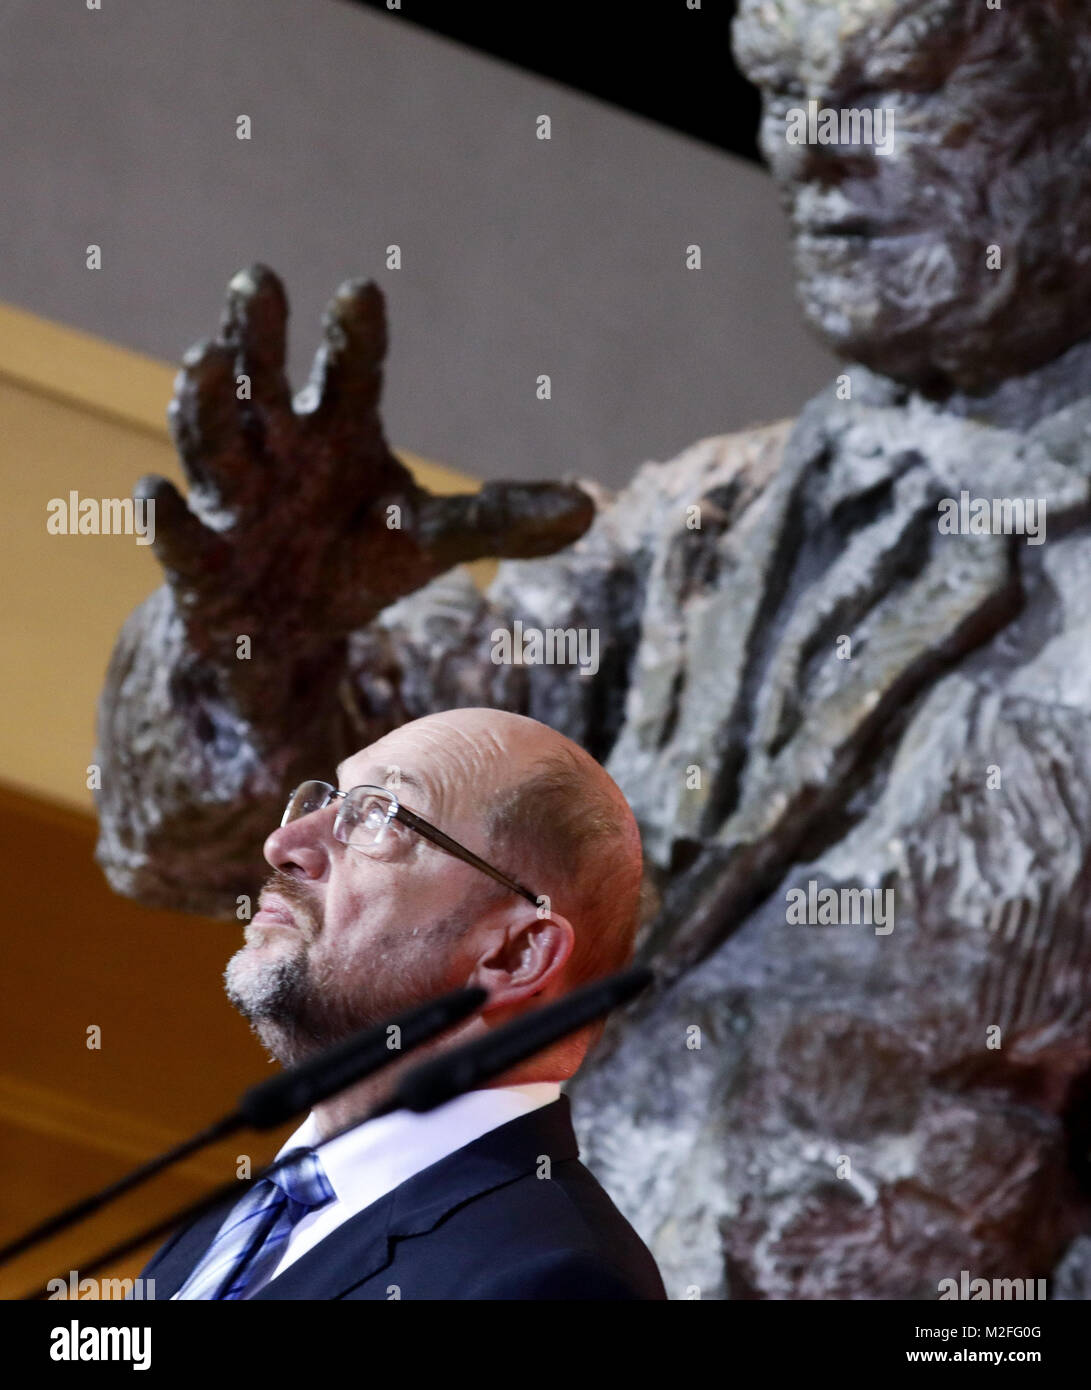 Berlin, Germany. 07th Feb, 2018. Martin Schulz, the chairman of the Social Democratic Party (SPD), delivers a statement - Stock Image